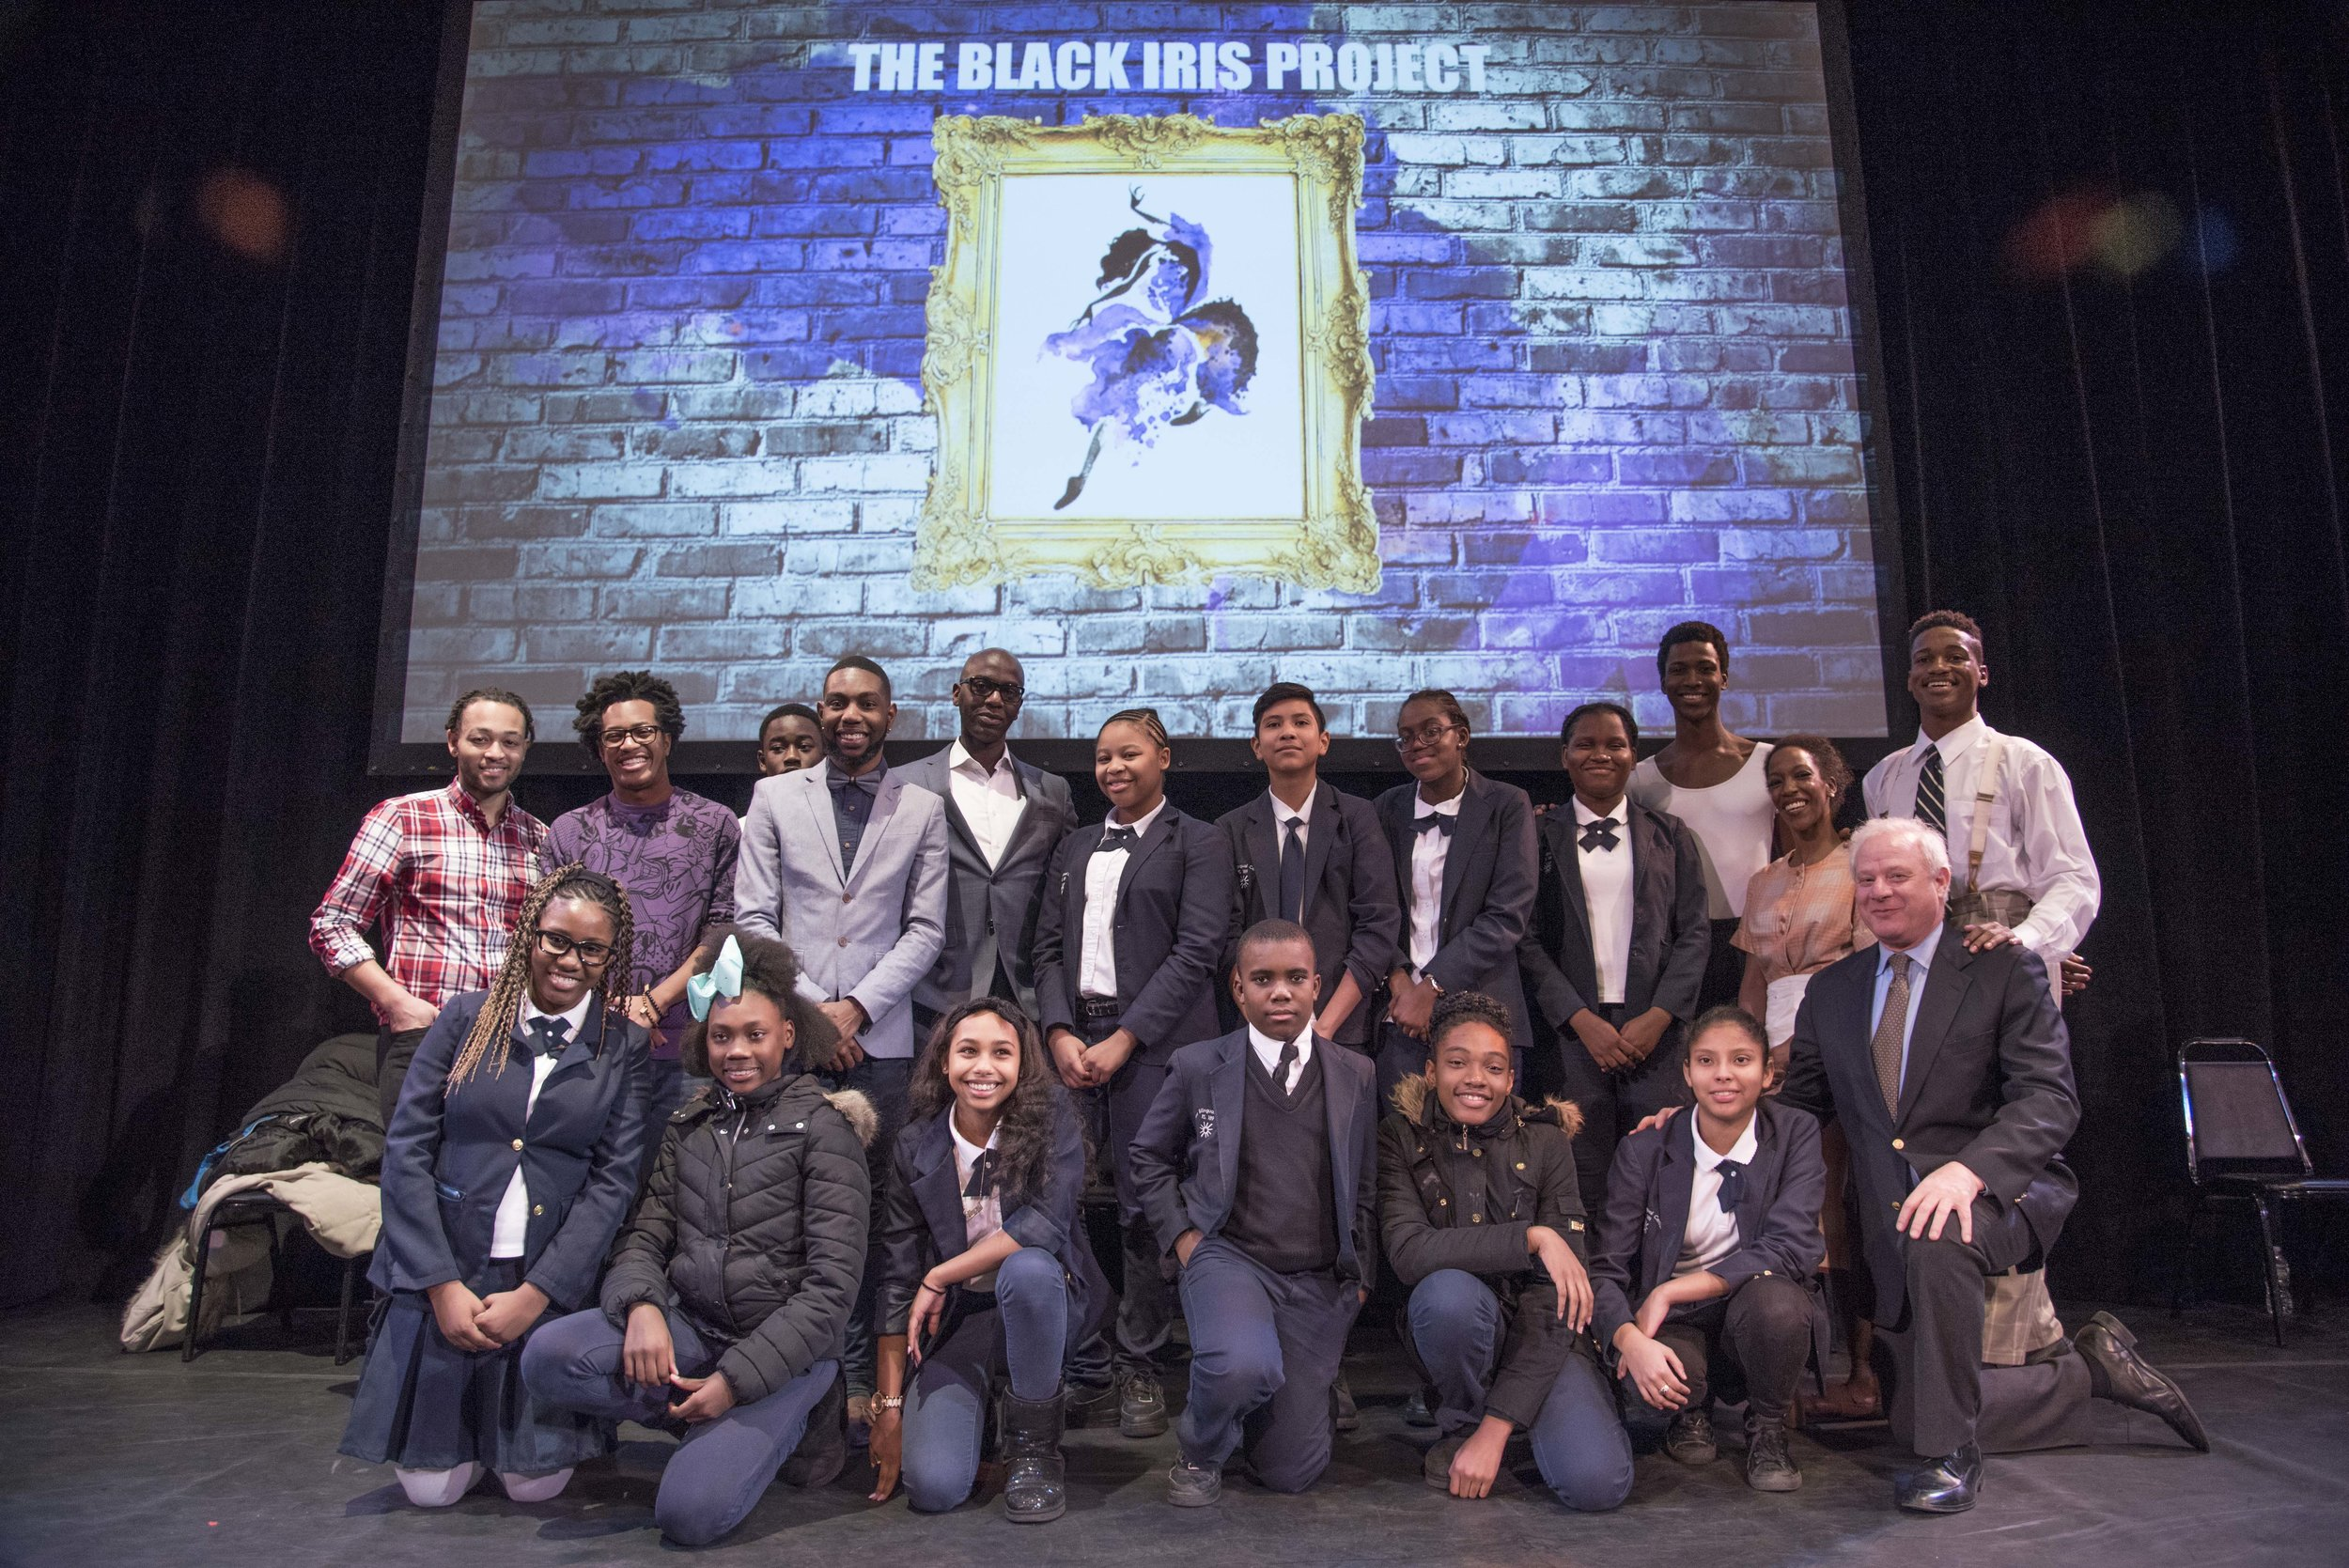 The Black Iris Project founder Jeremy McQueen (plaid shirt, left) Con Edison's Alton Murray (center, glasses) and Town Hall president Tom M. Wirtshafter (right, kneeling)  welcome students from P.S. 189 in Brooklyn to The Town Hall.